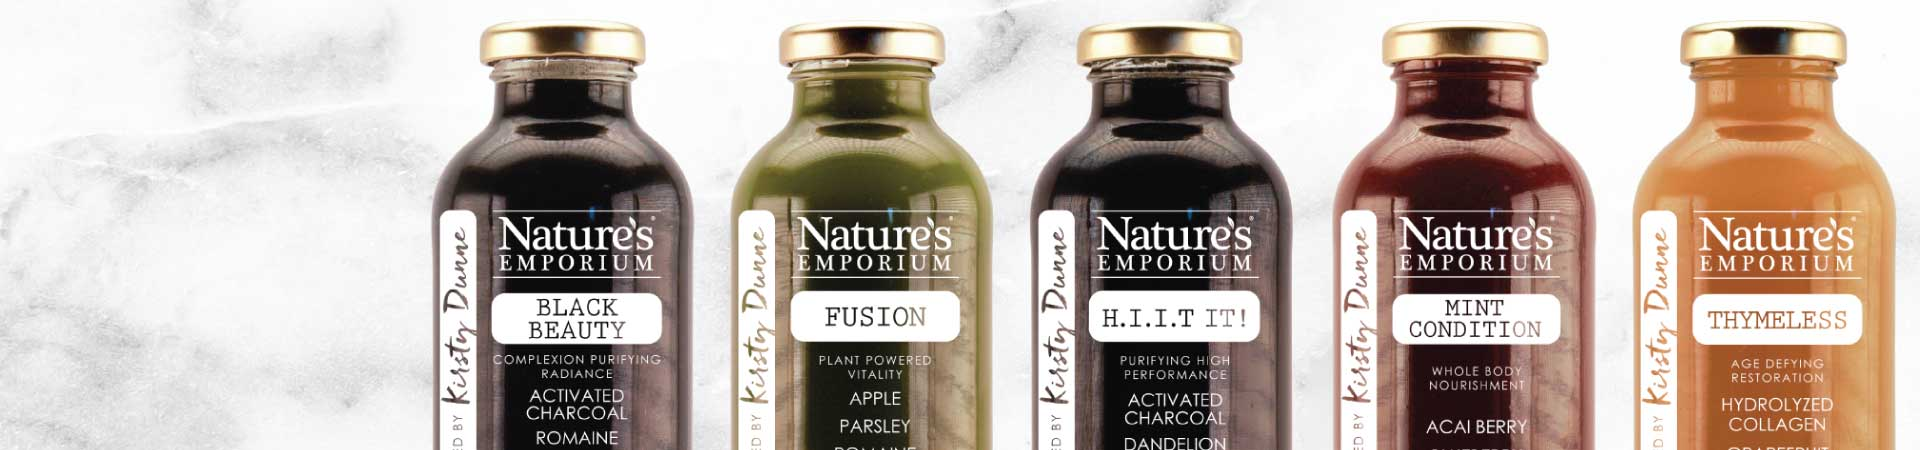 Kirsty-Dunne-Lifestyle-Detox-Cold-Pressed-Juice-Program-Home-Page-Banner